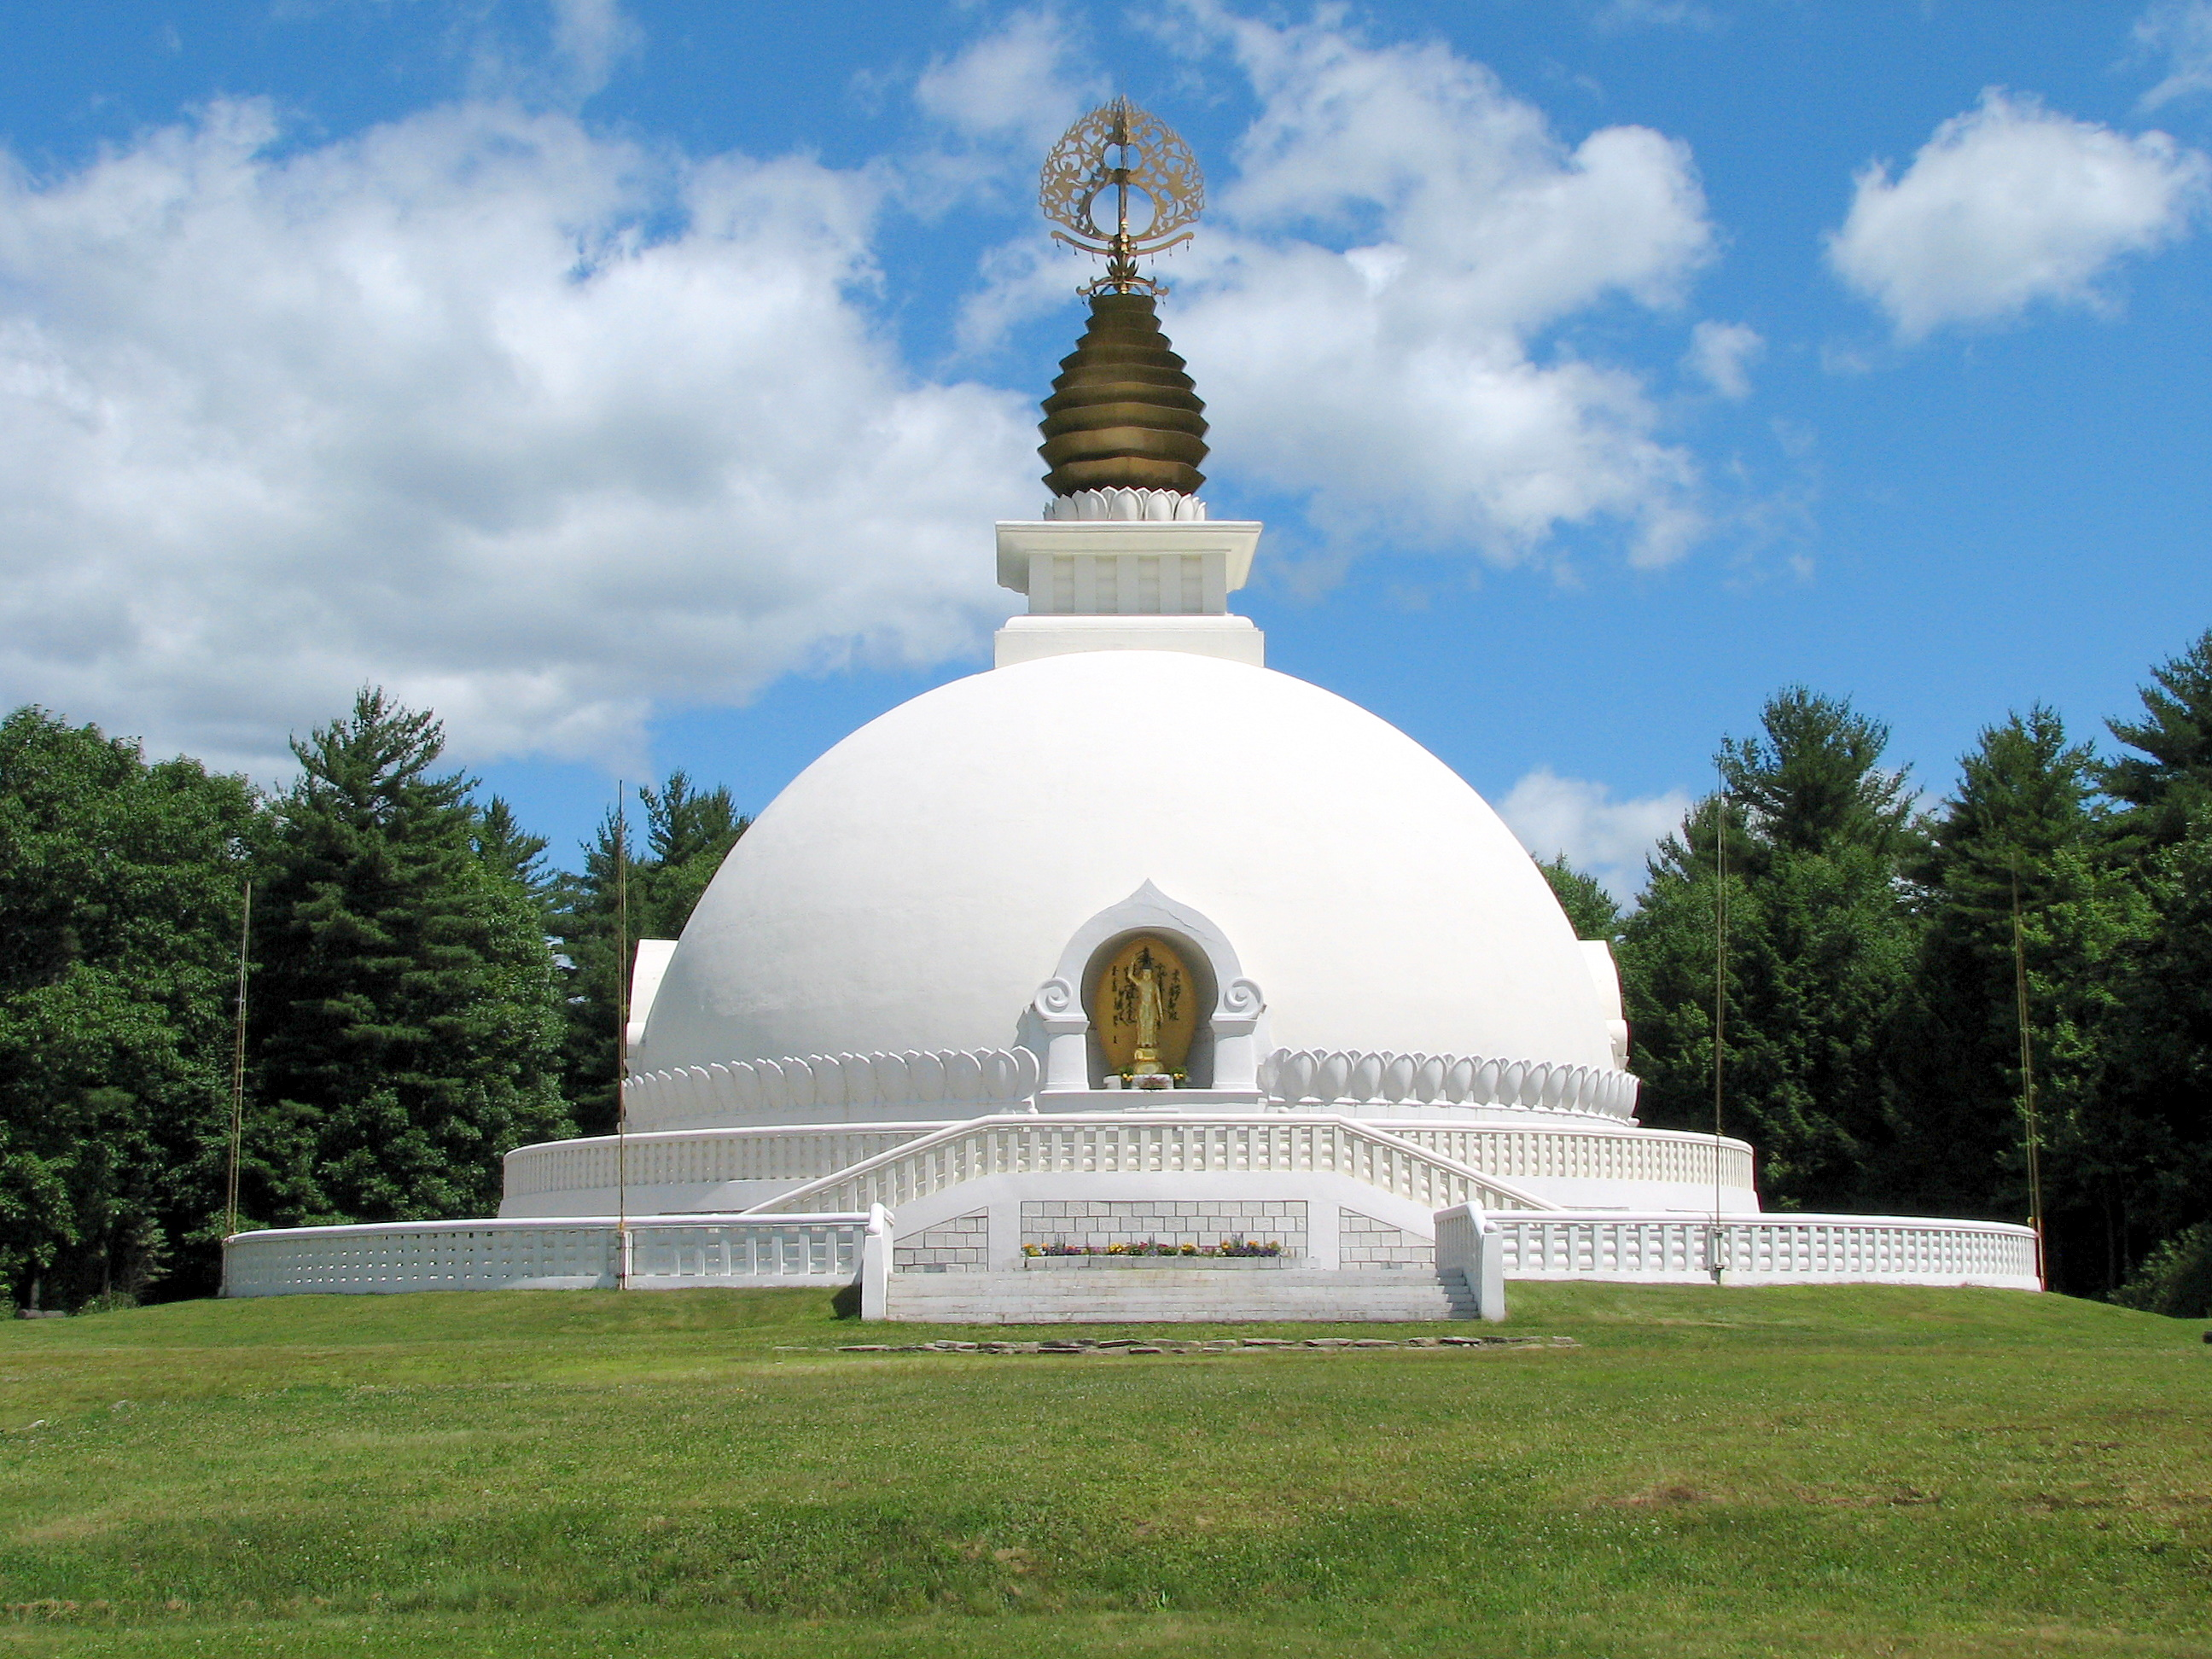 leverett-peace-pagoda